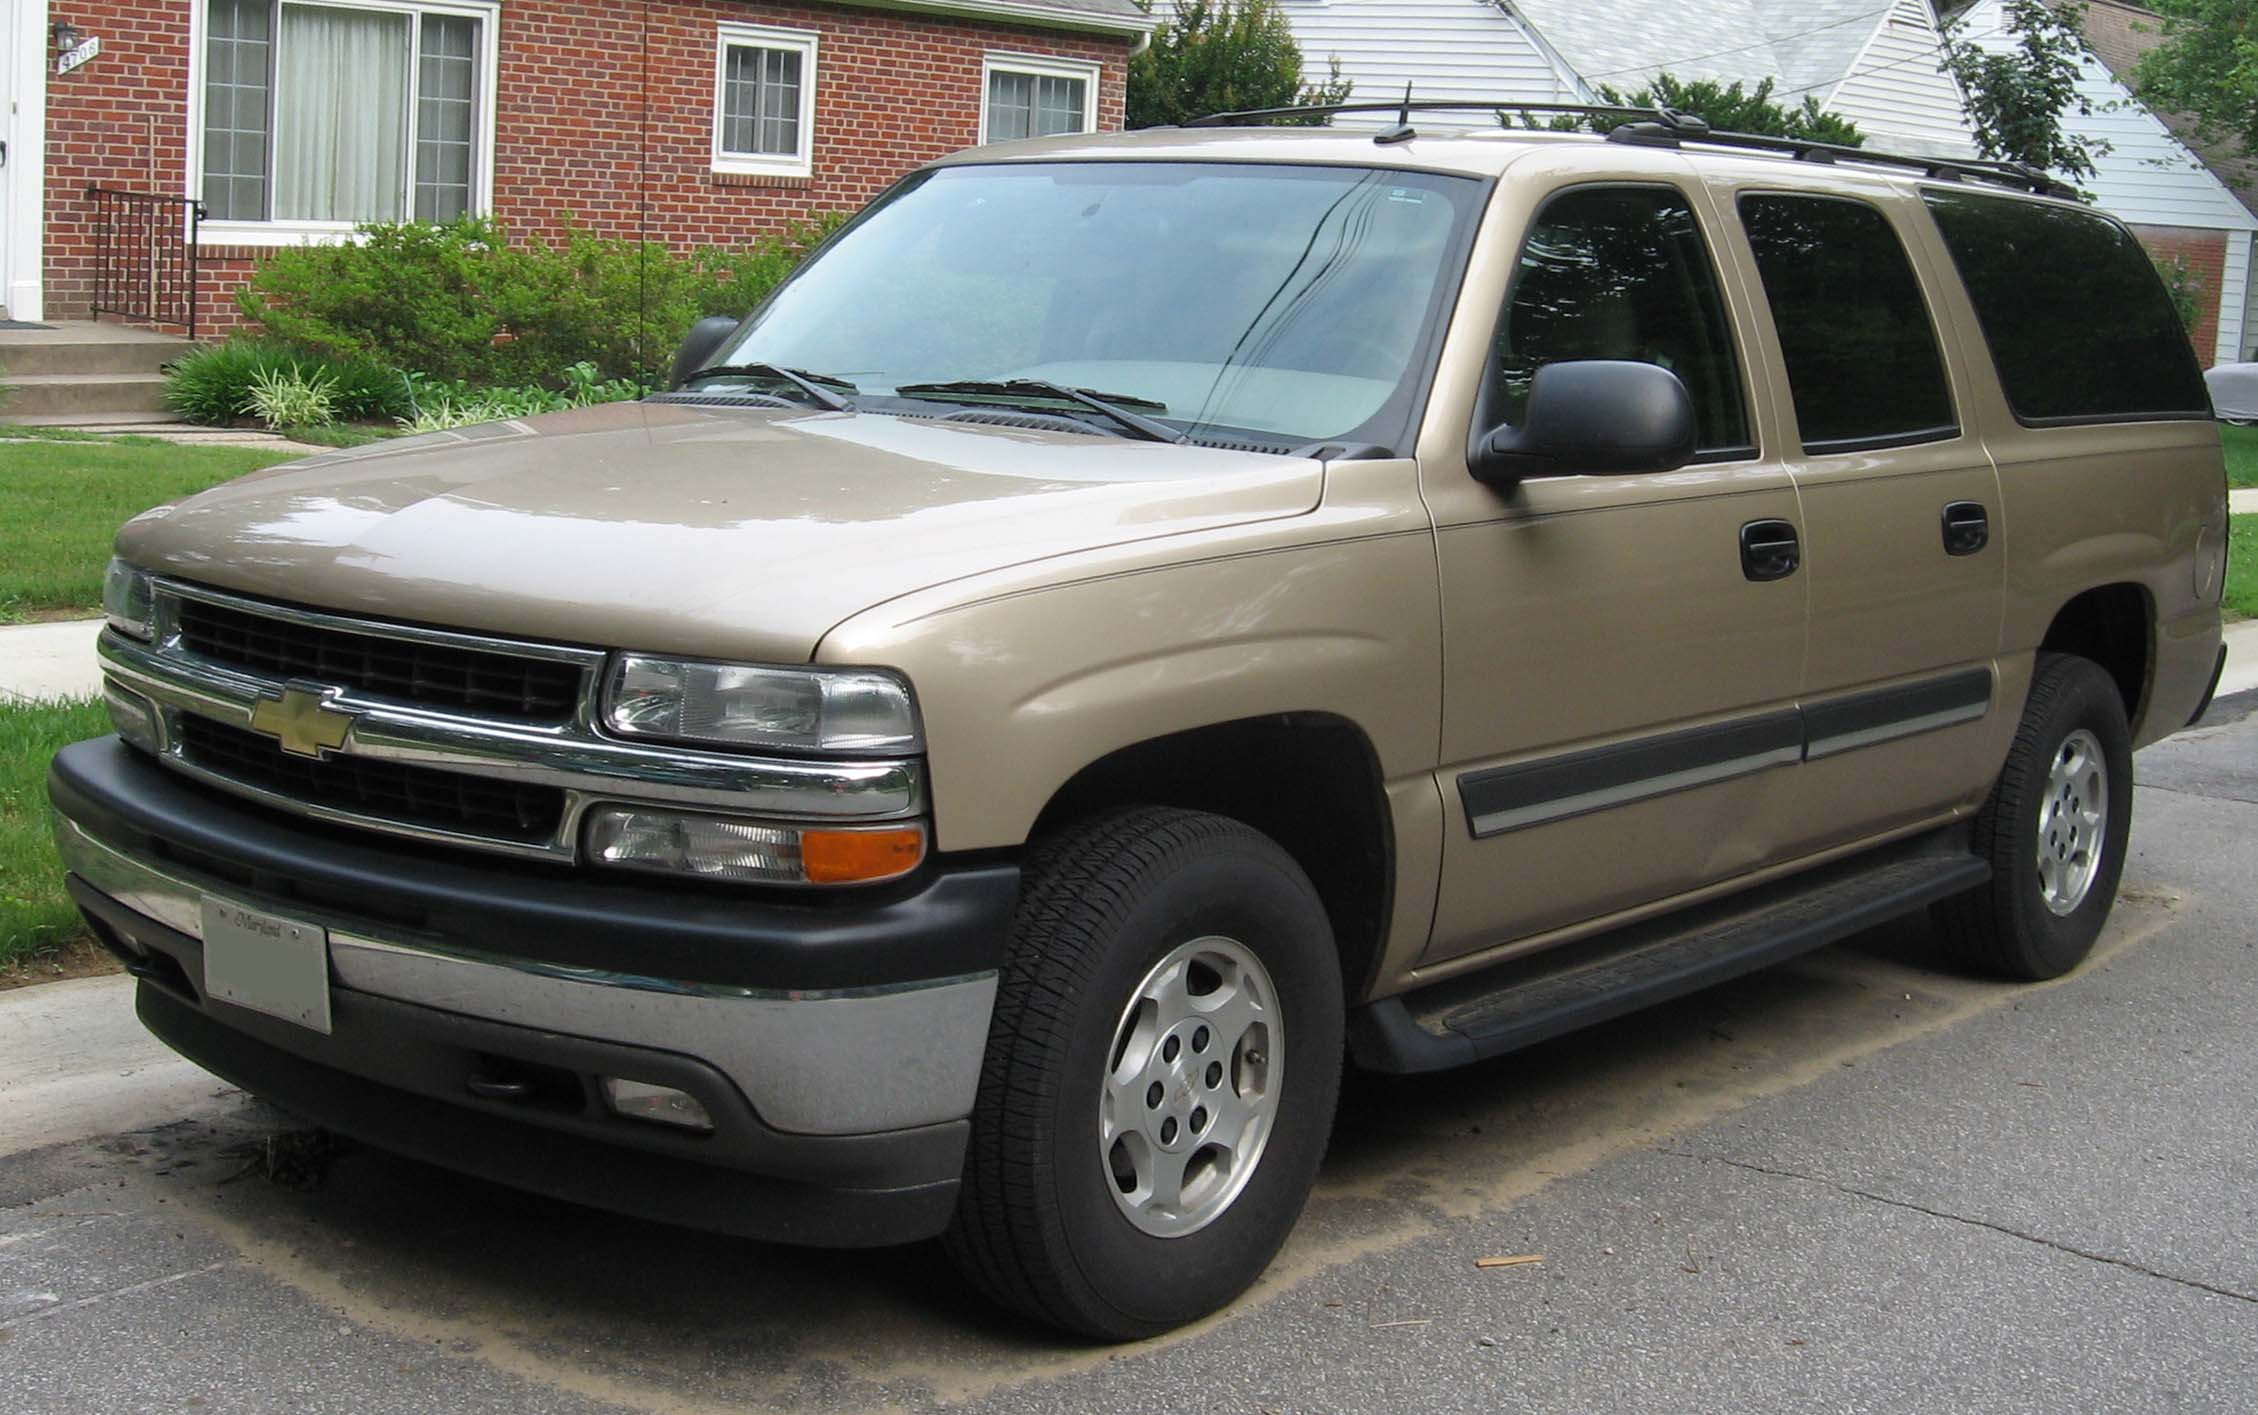 gmc yukon (gmt800) 2002 models